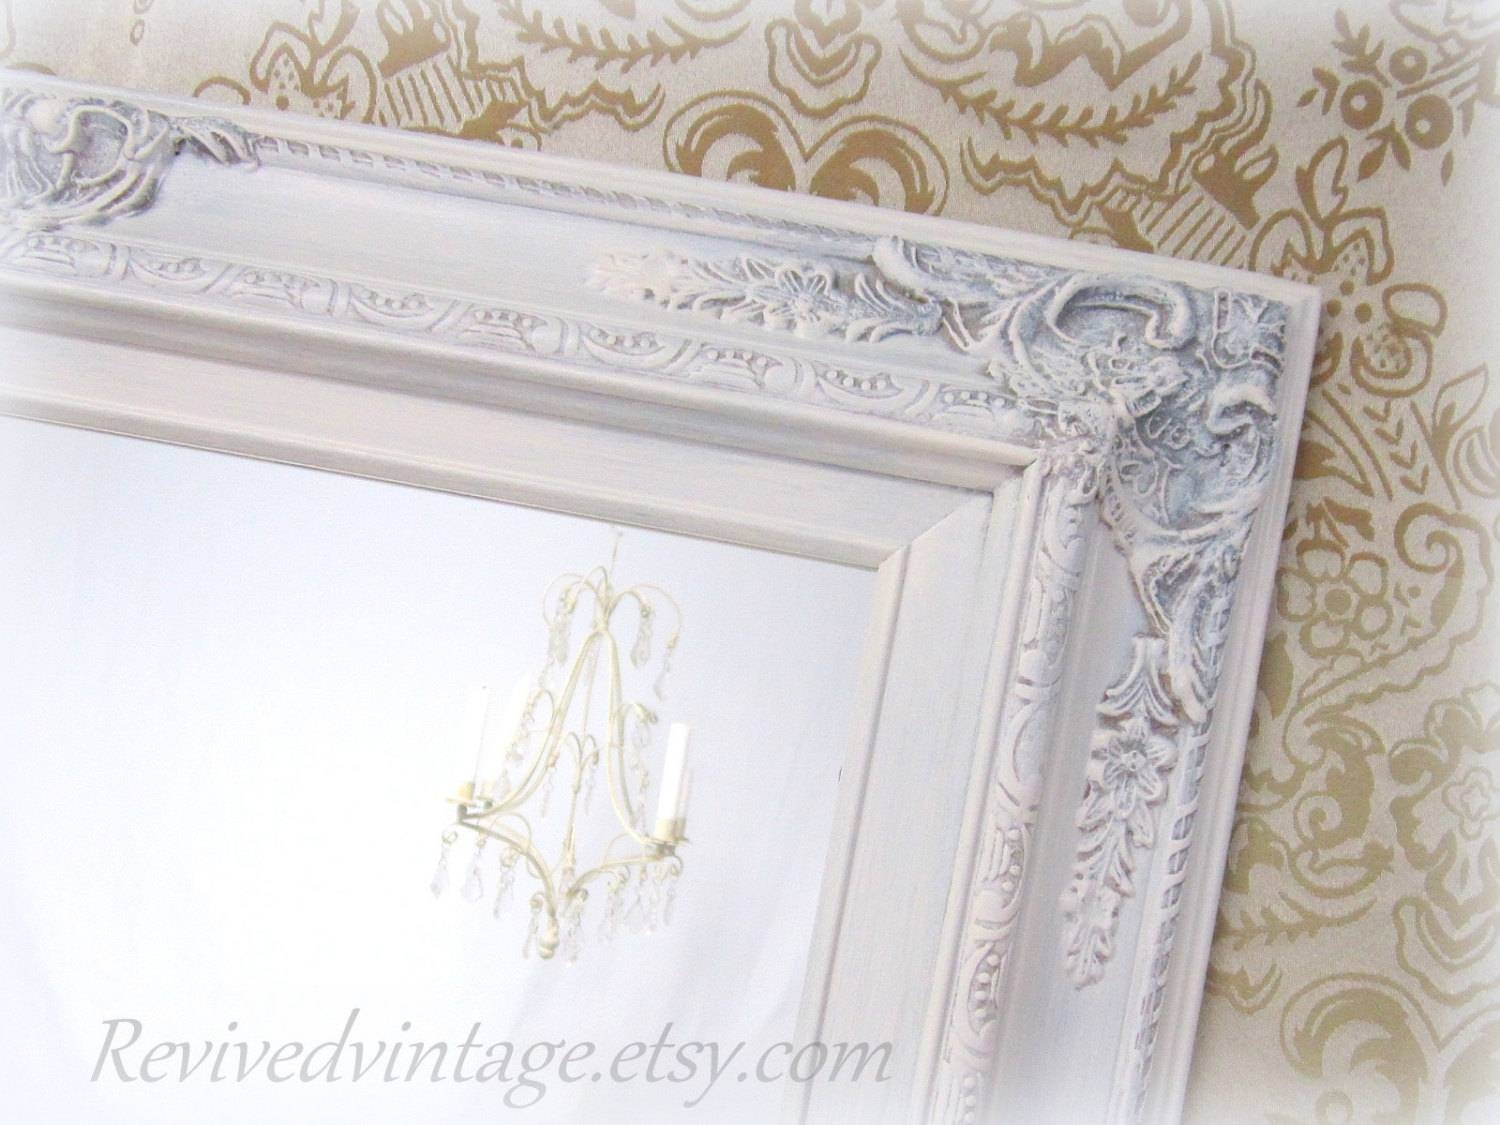 Shabby Chic Mirrors For Sale Baroque Framed Mirror inside Mirrors Shabby Chic (Image 20 of 25)